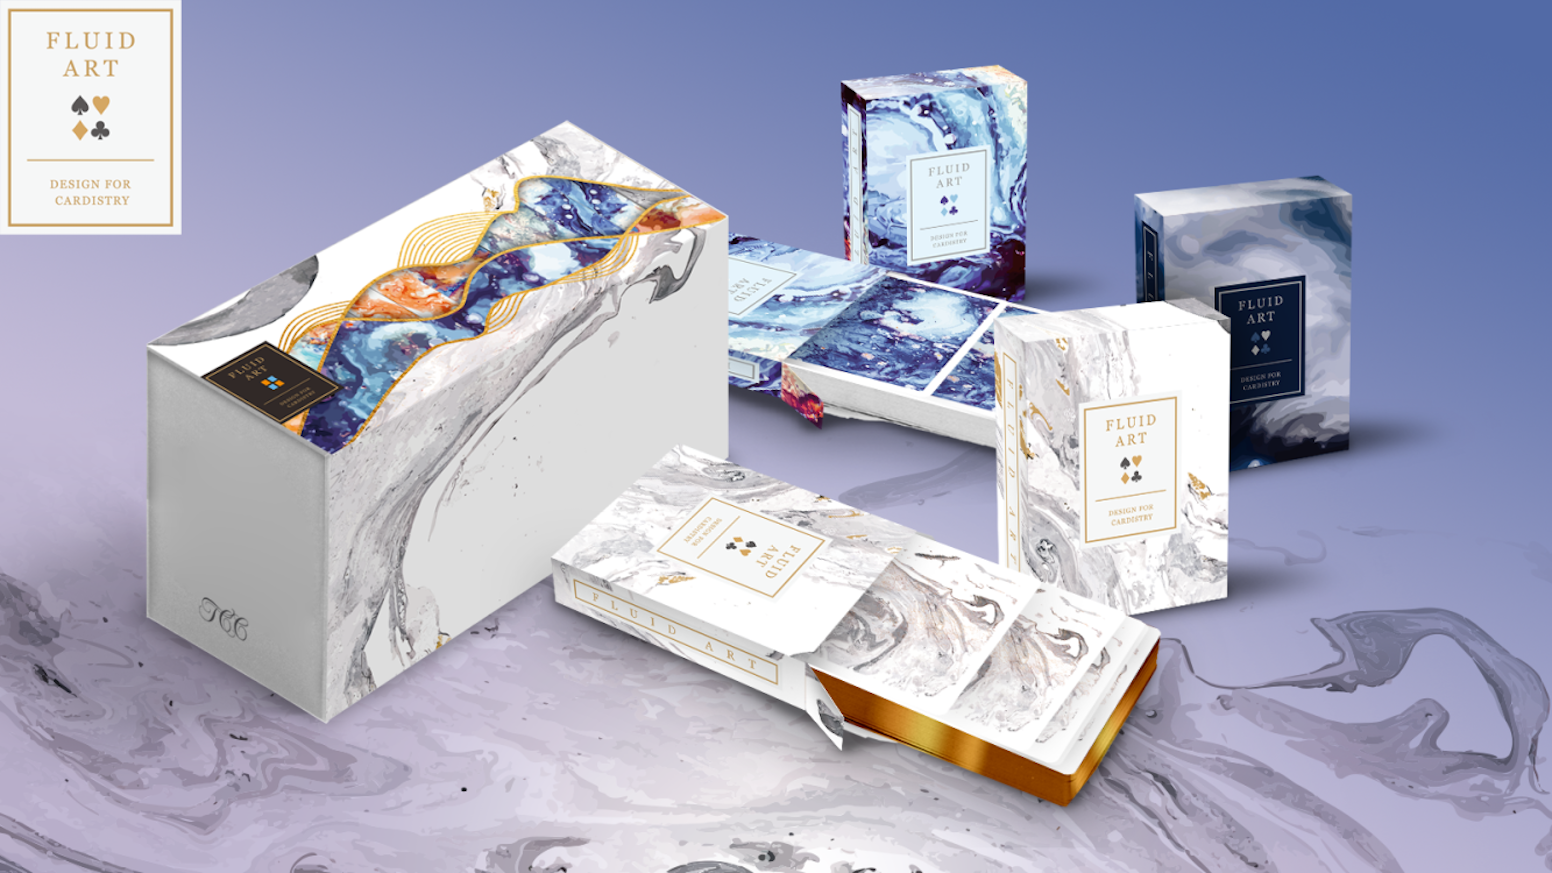 Packs flowing & swirling colors into a deck of playing cards.